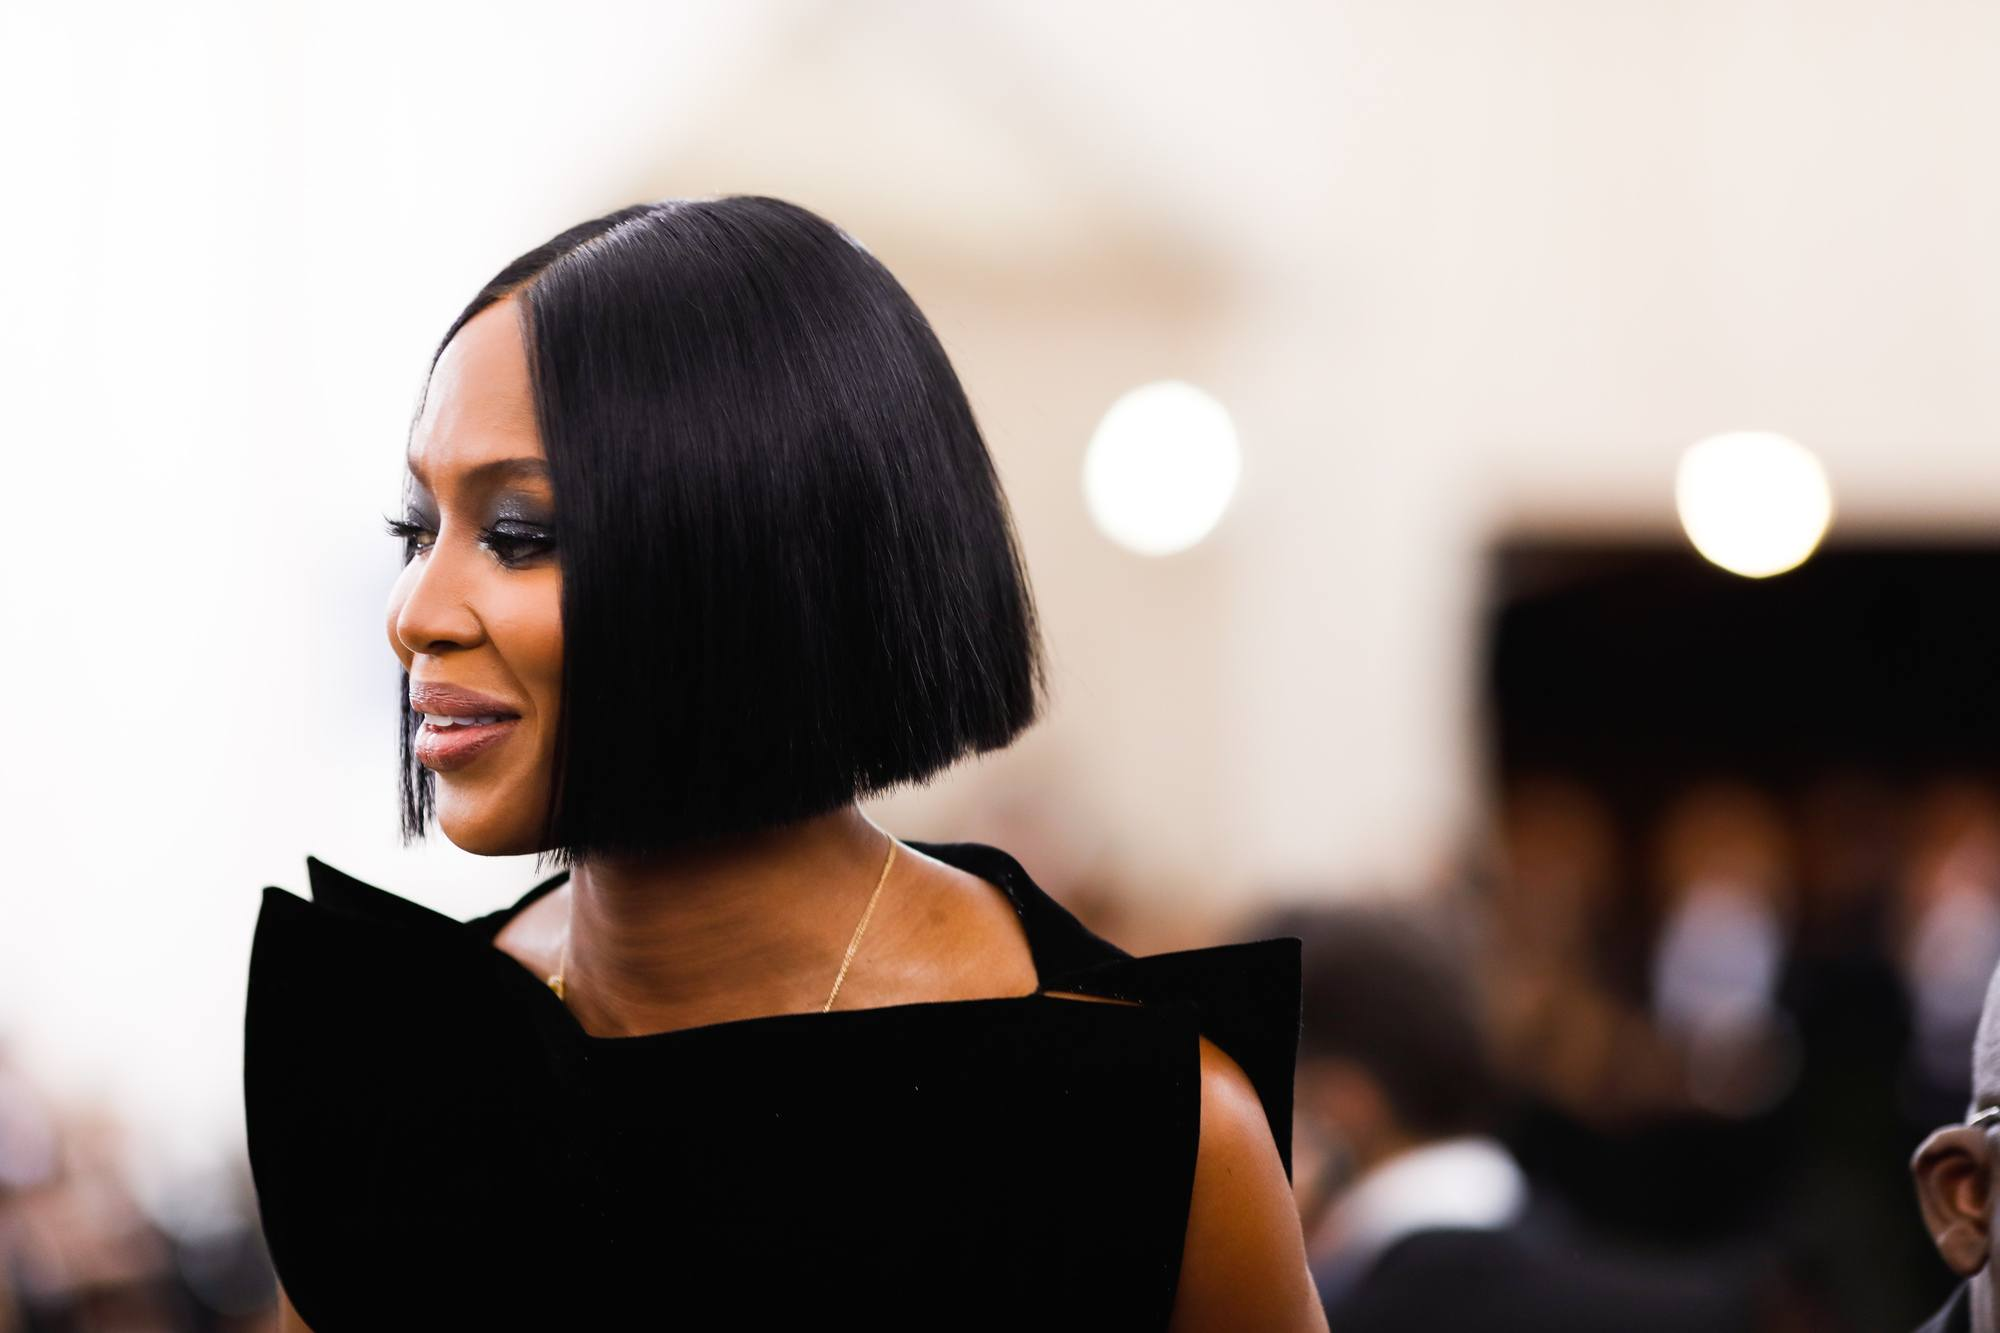 Naomi Campbell's blunt bob at the Met gala 2017